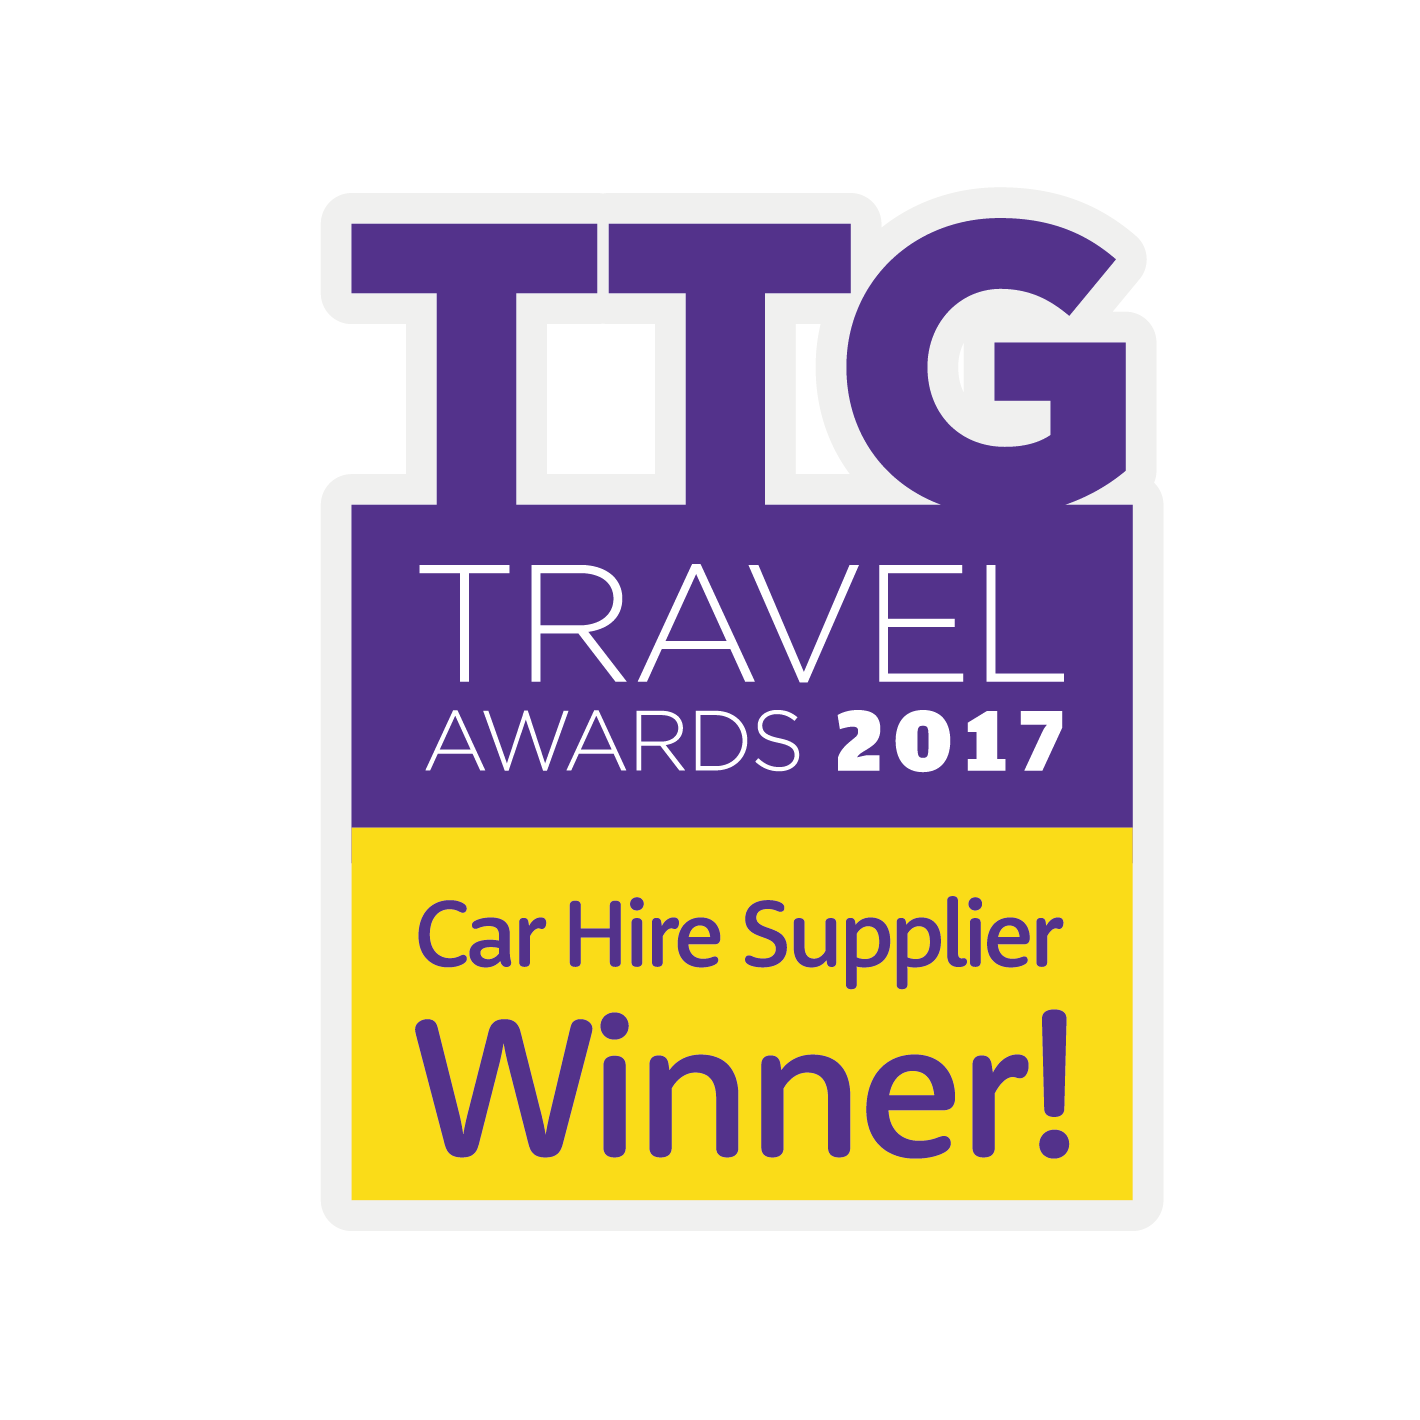 Award winning car hire